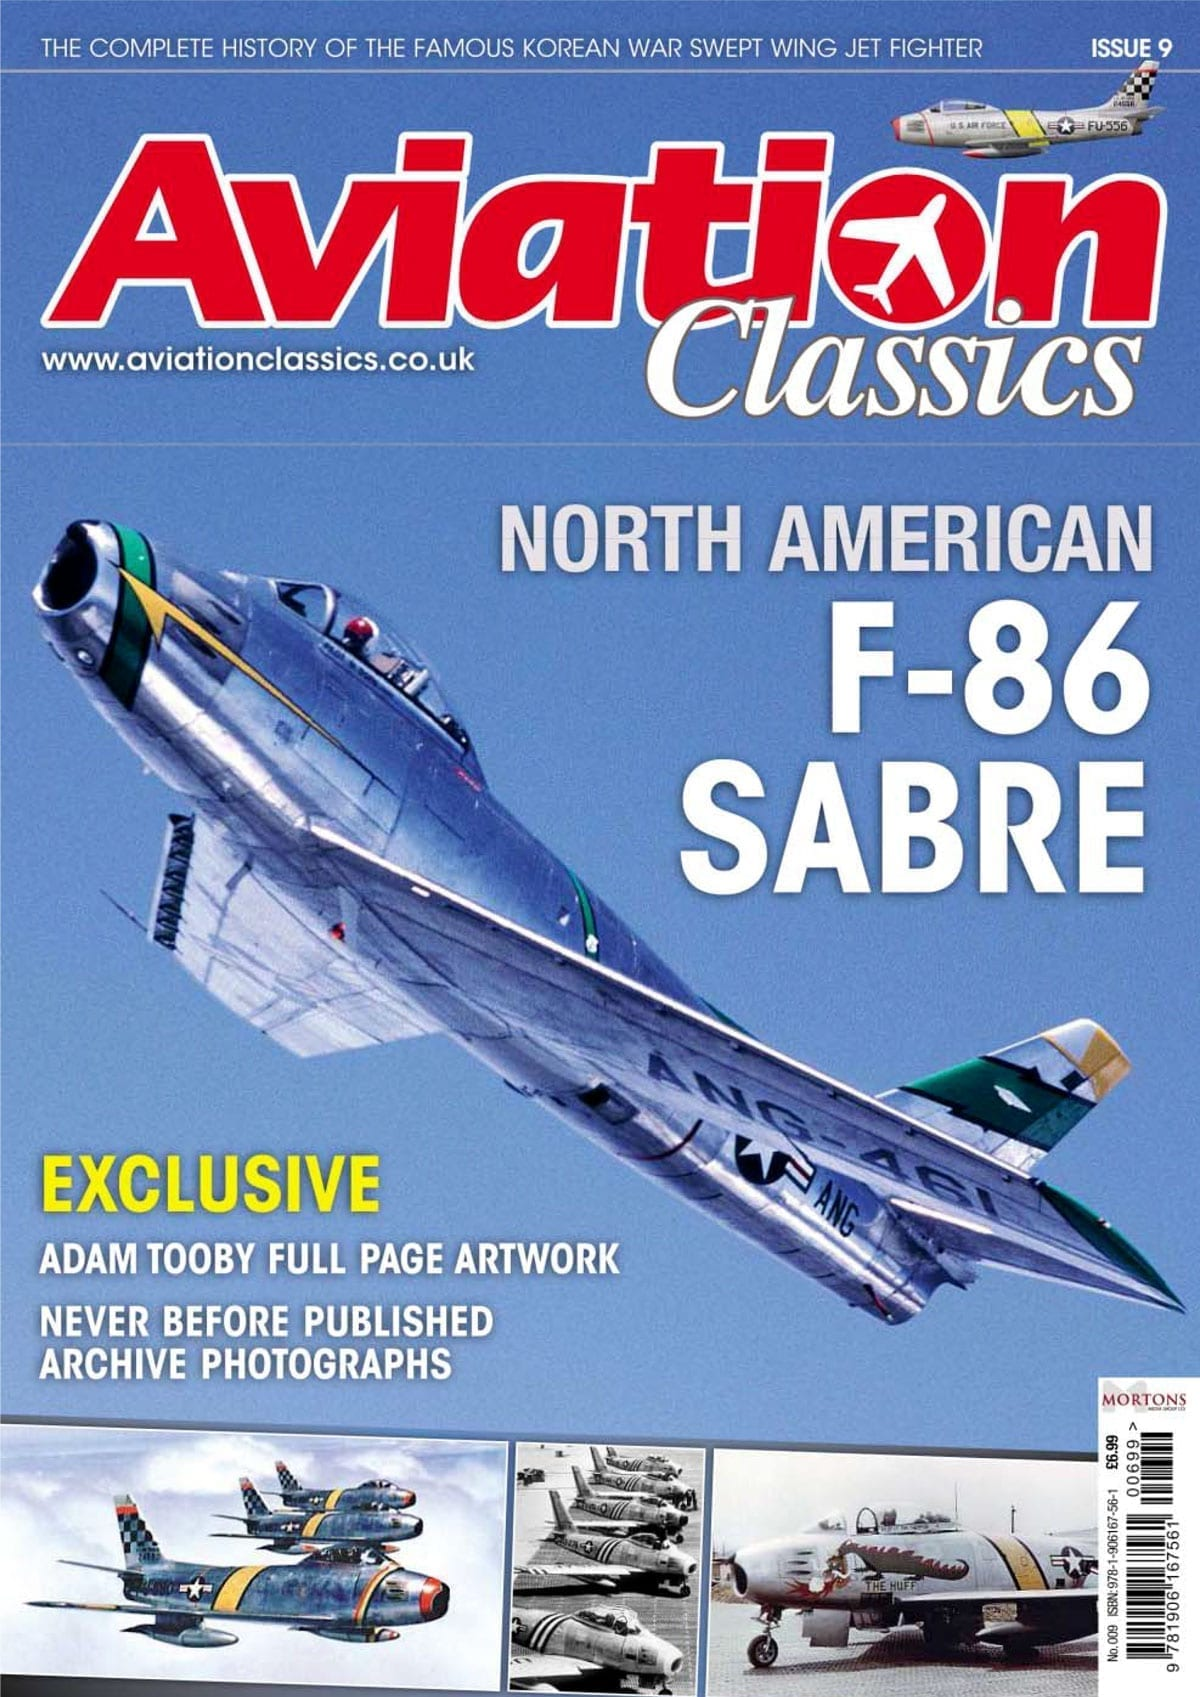 Aviation Classics F-86 Sabre